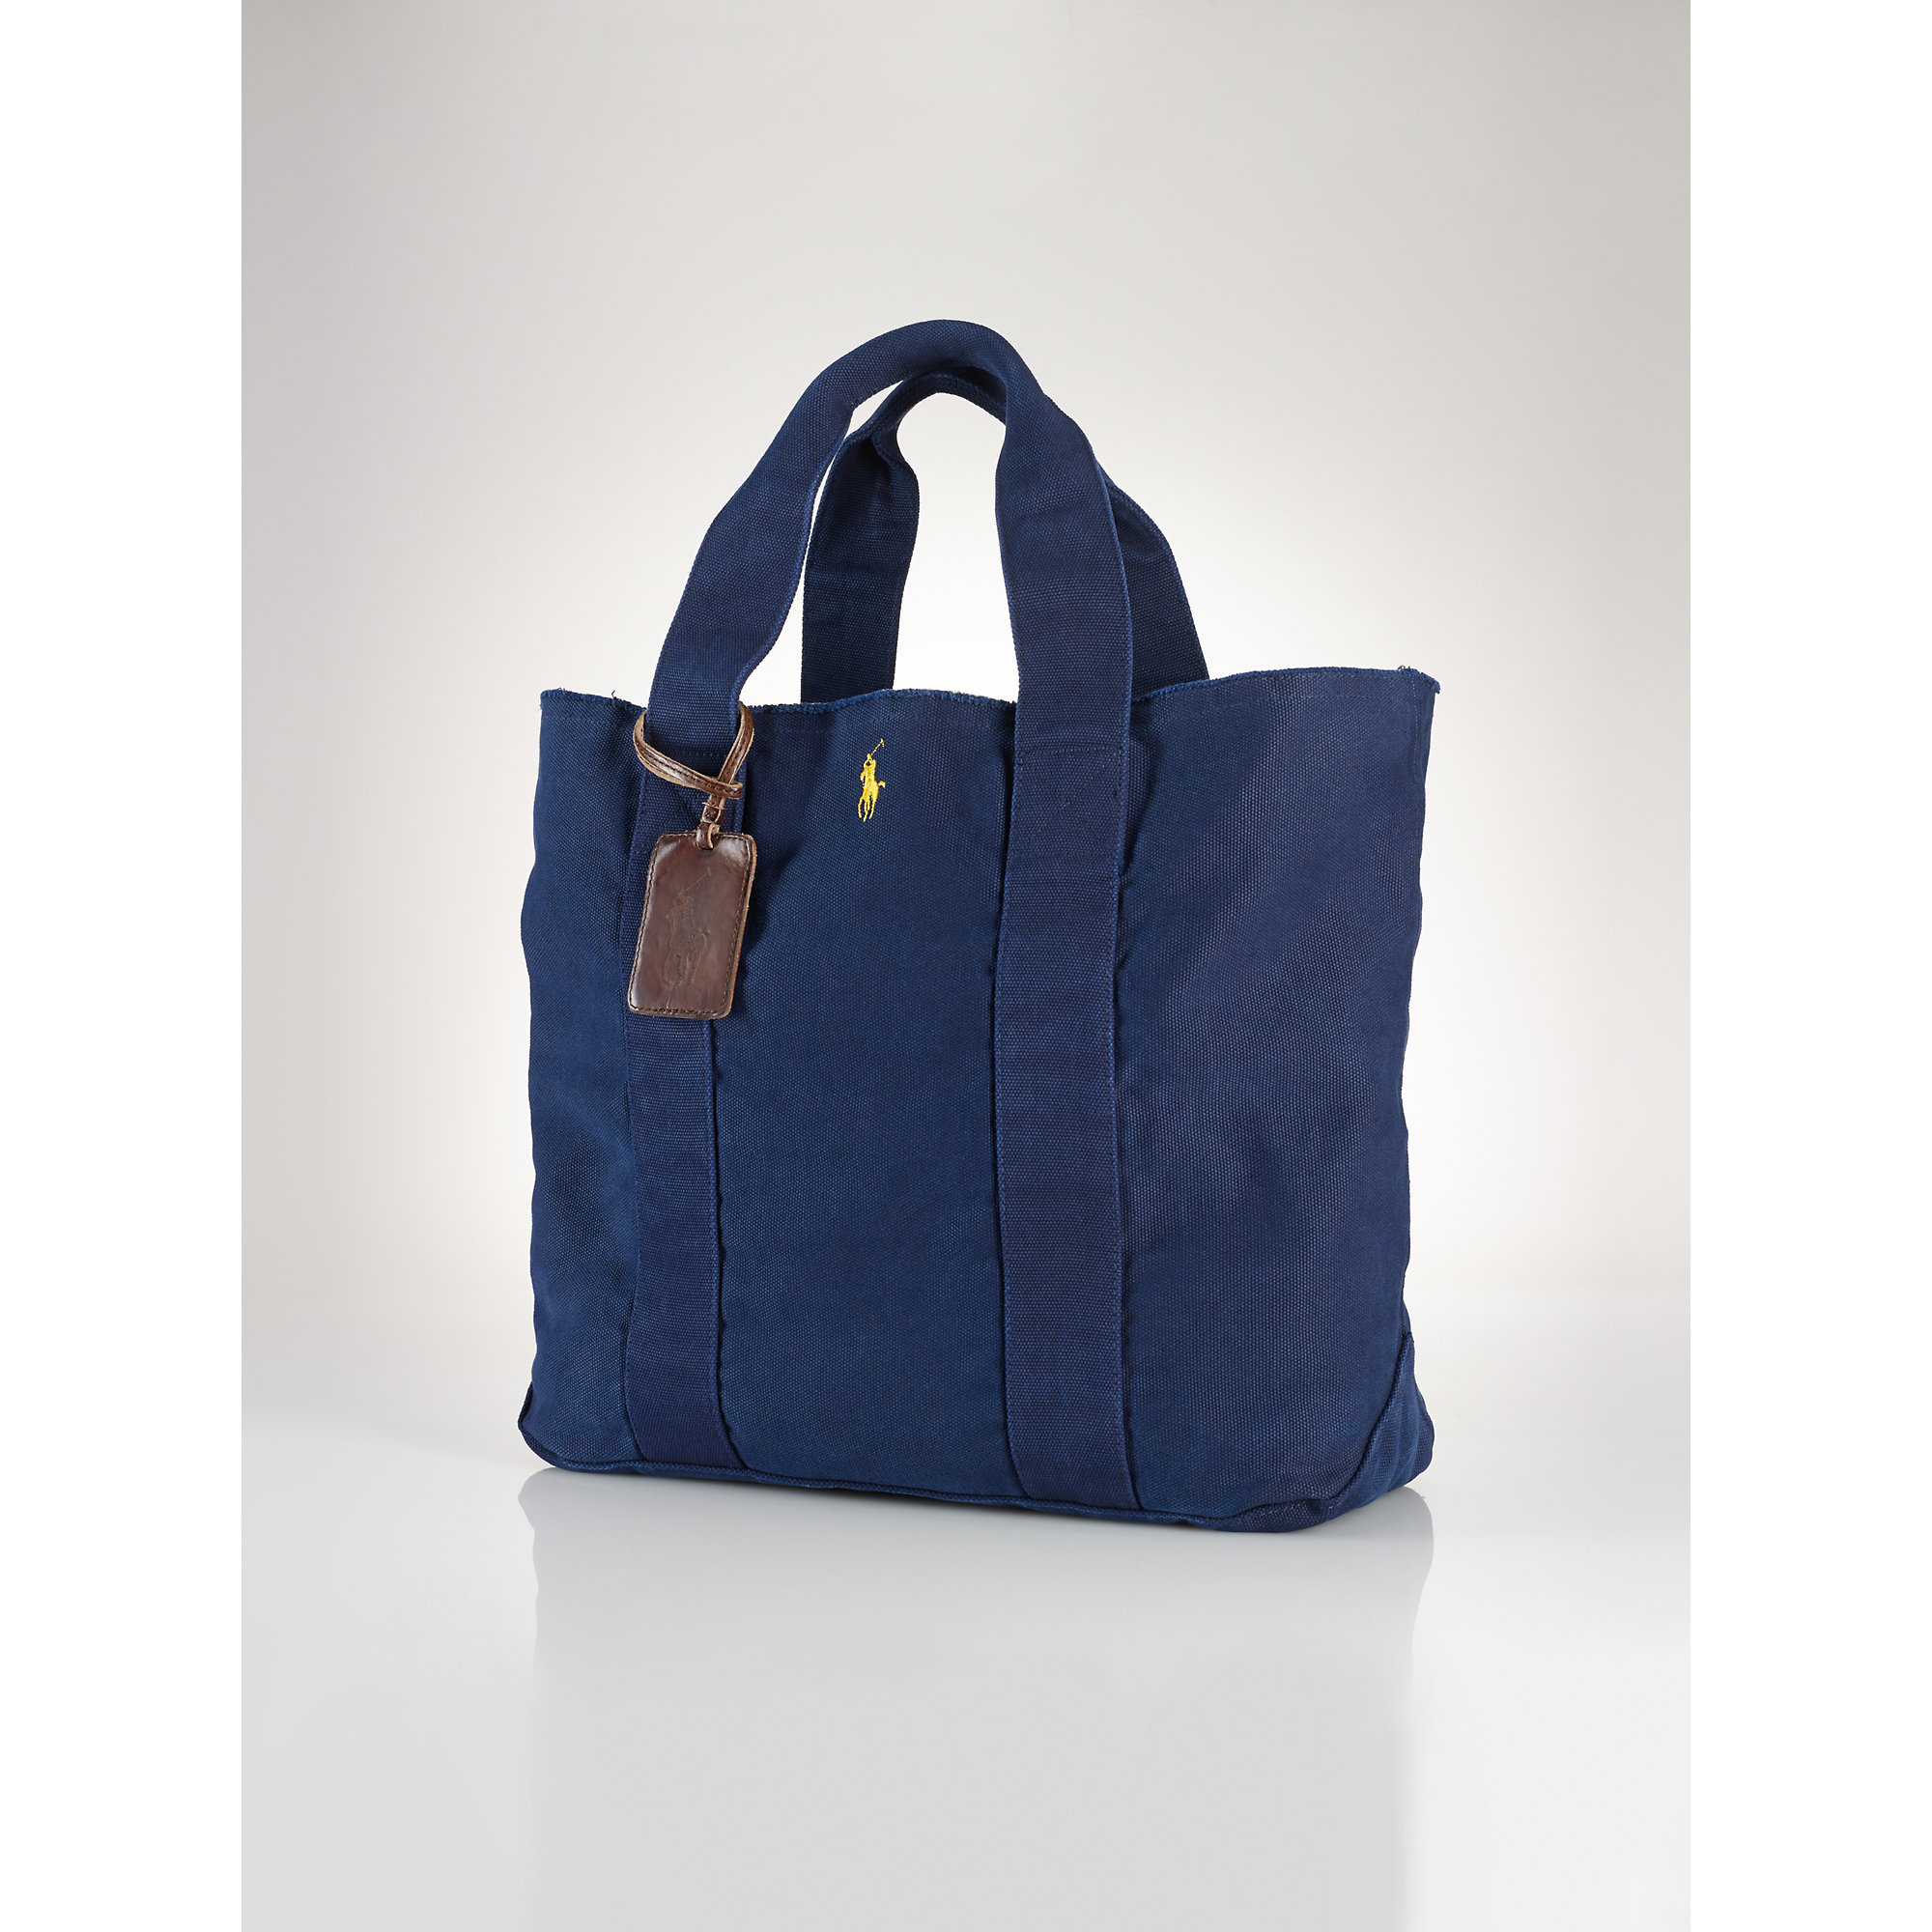 Lyst - Polo Ralph Lauren Pony Canvas Tote in Blue 3ef2c75de4eaf